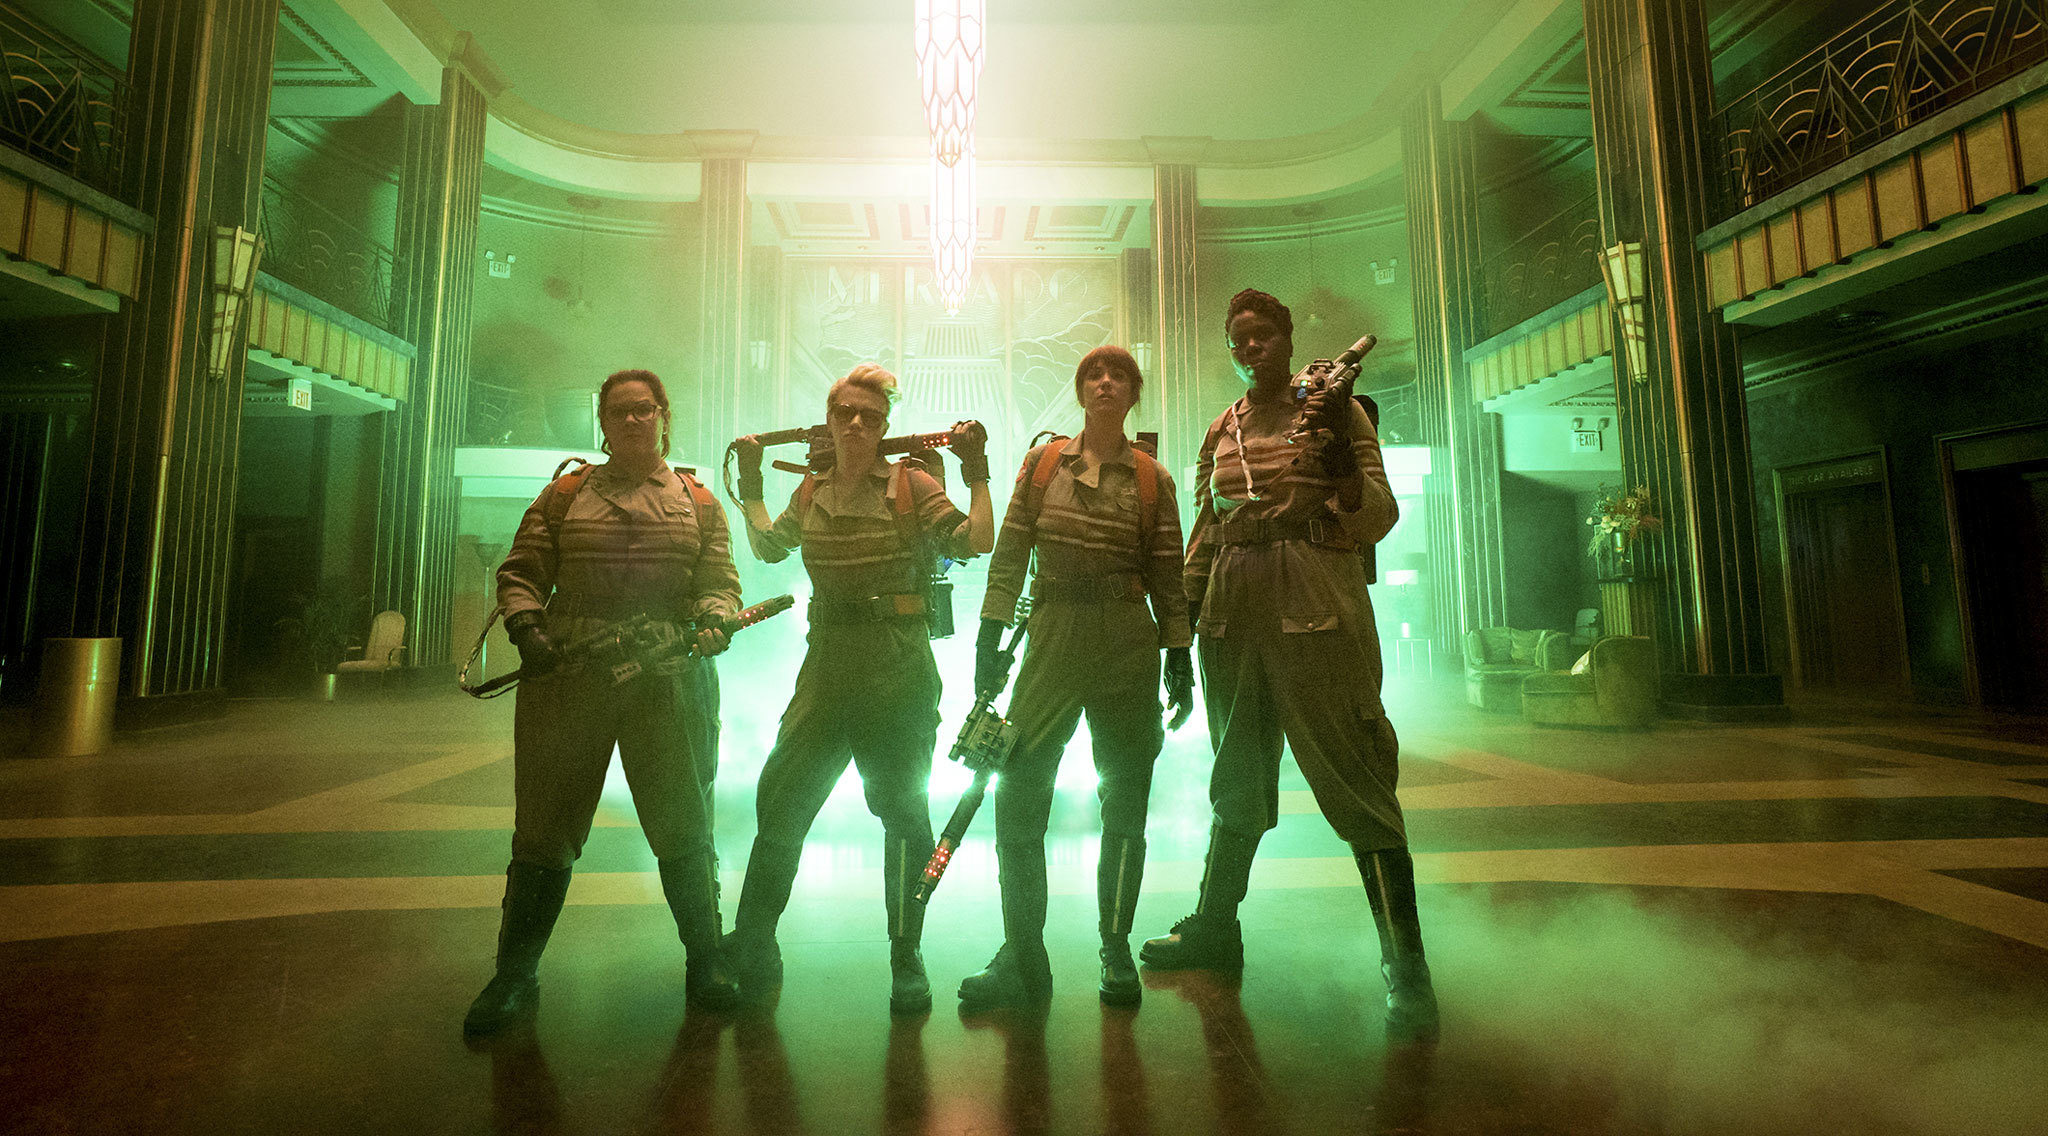 16 blockbuster movies to look forward to in 2016: Ghostbusters